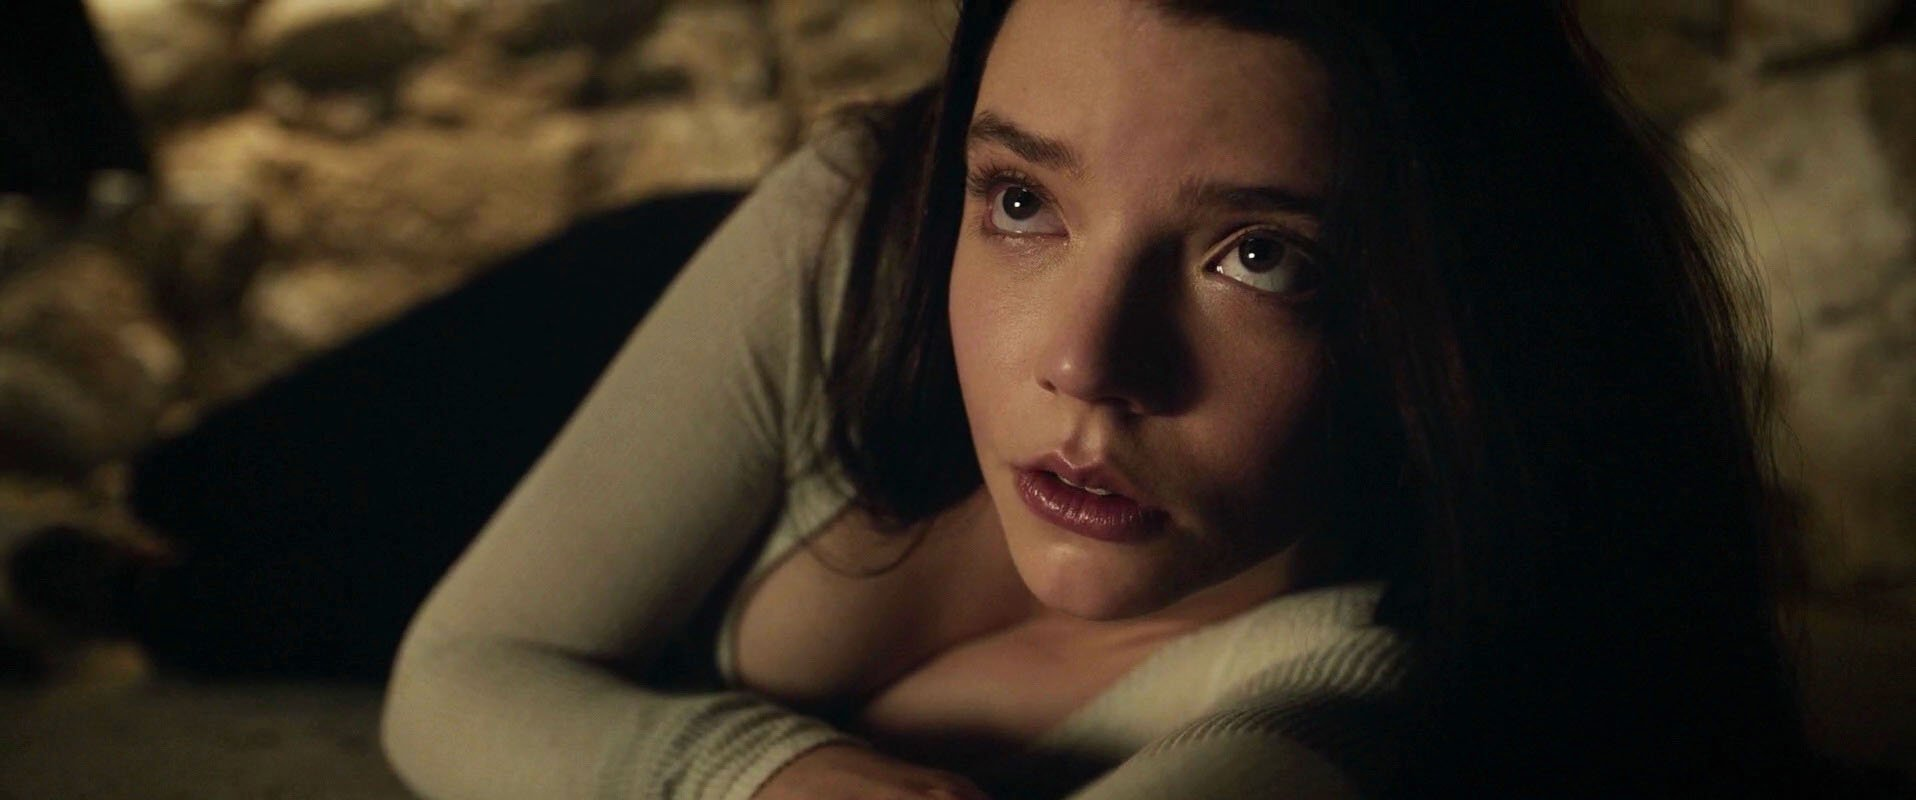 Nude Video Celebs Actress Anya Taylor Joy